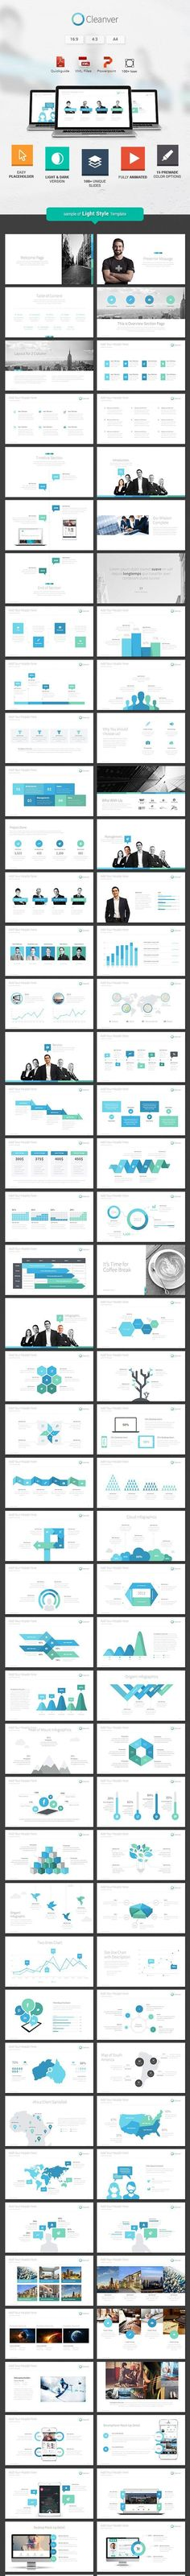 Buy Cleanver - Clean Powerpoint Presentation by SlideWerk on GraphicRiver. Cleanver is a Clean and modern Multi-purpose Powerpoint Presentation Template, designed with shape style, 3 size lay. Powerpoint Themes, Powerpoint Presentation Templates, Keynote Template, Map Vector, Presentation Design, Color Themes, Light In The Dark, Color Change, Infographic